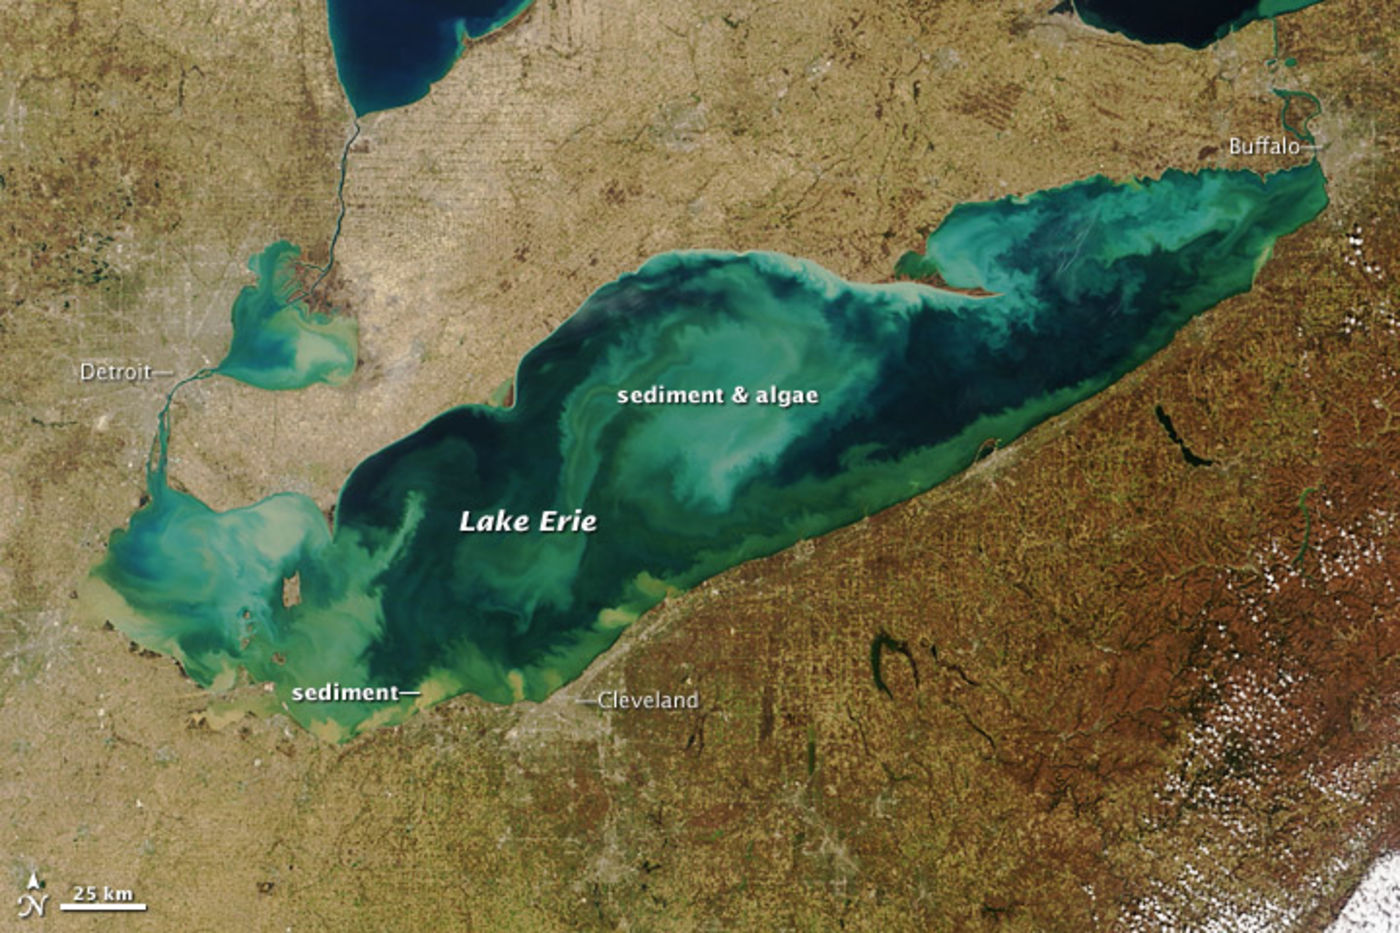 Satellite image of a marble green and blue body of water surrounded by brown land